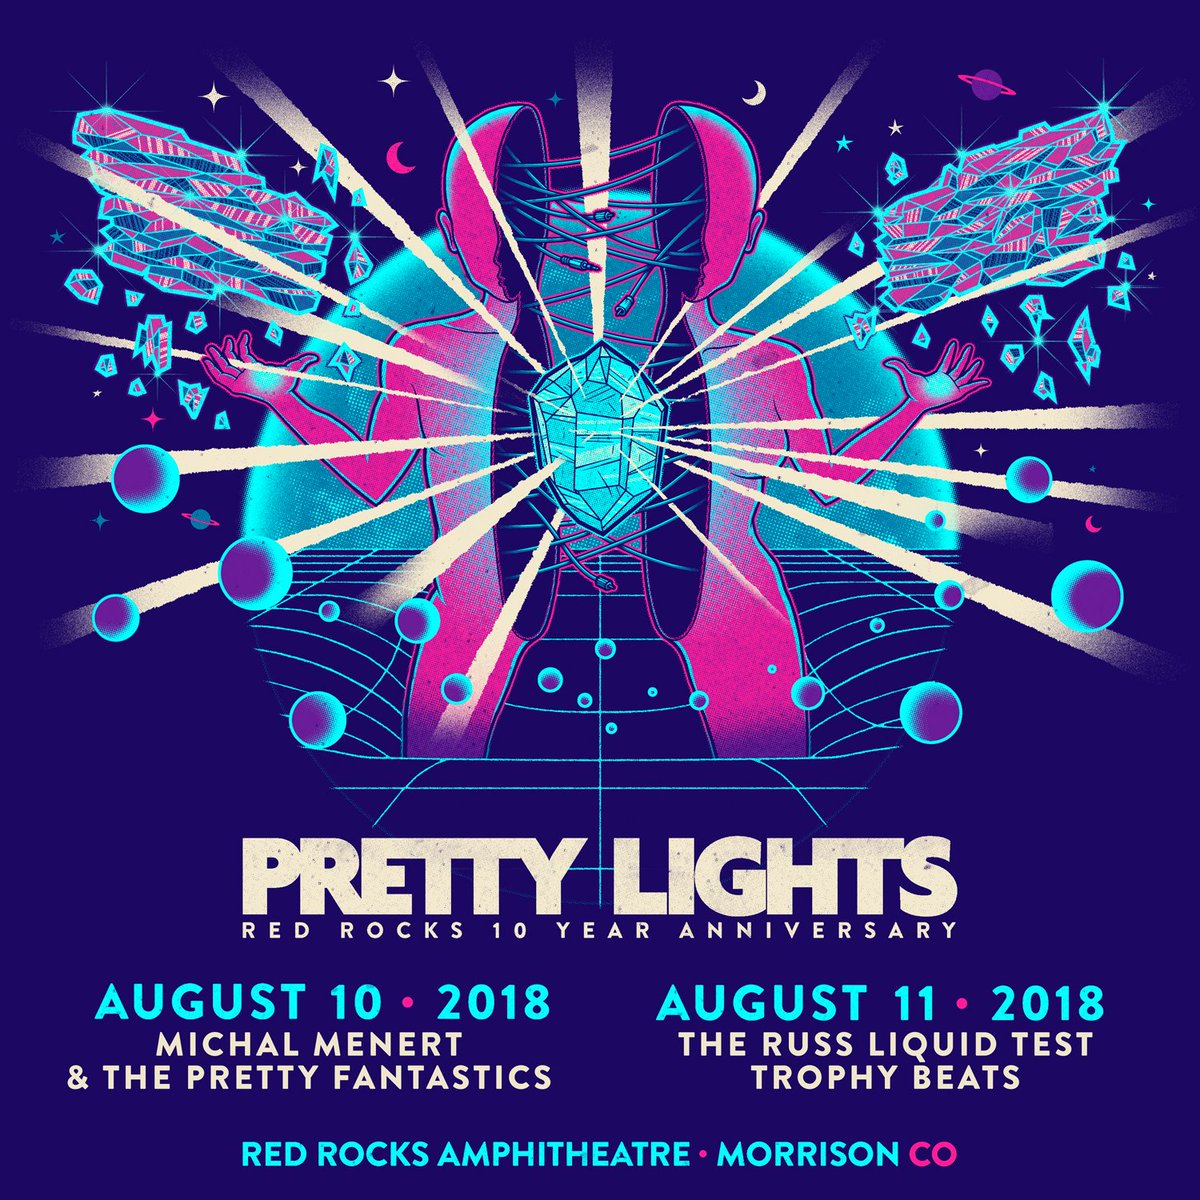 RED ROCKS! Special guests announced for August 10-11 https://t.co/rsYLq5ucHt